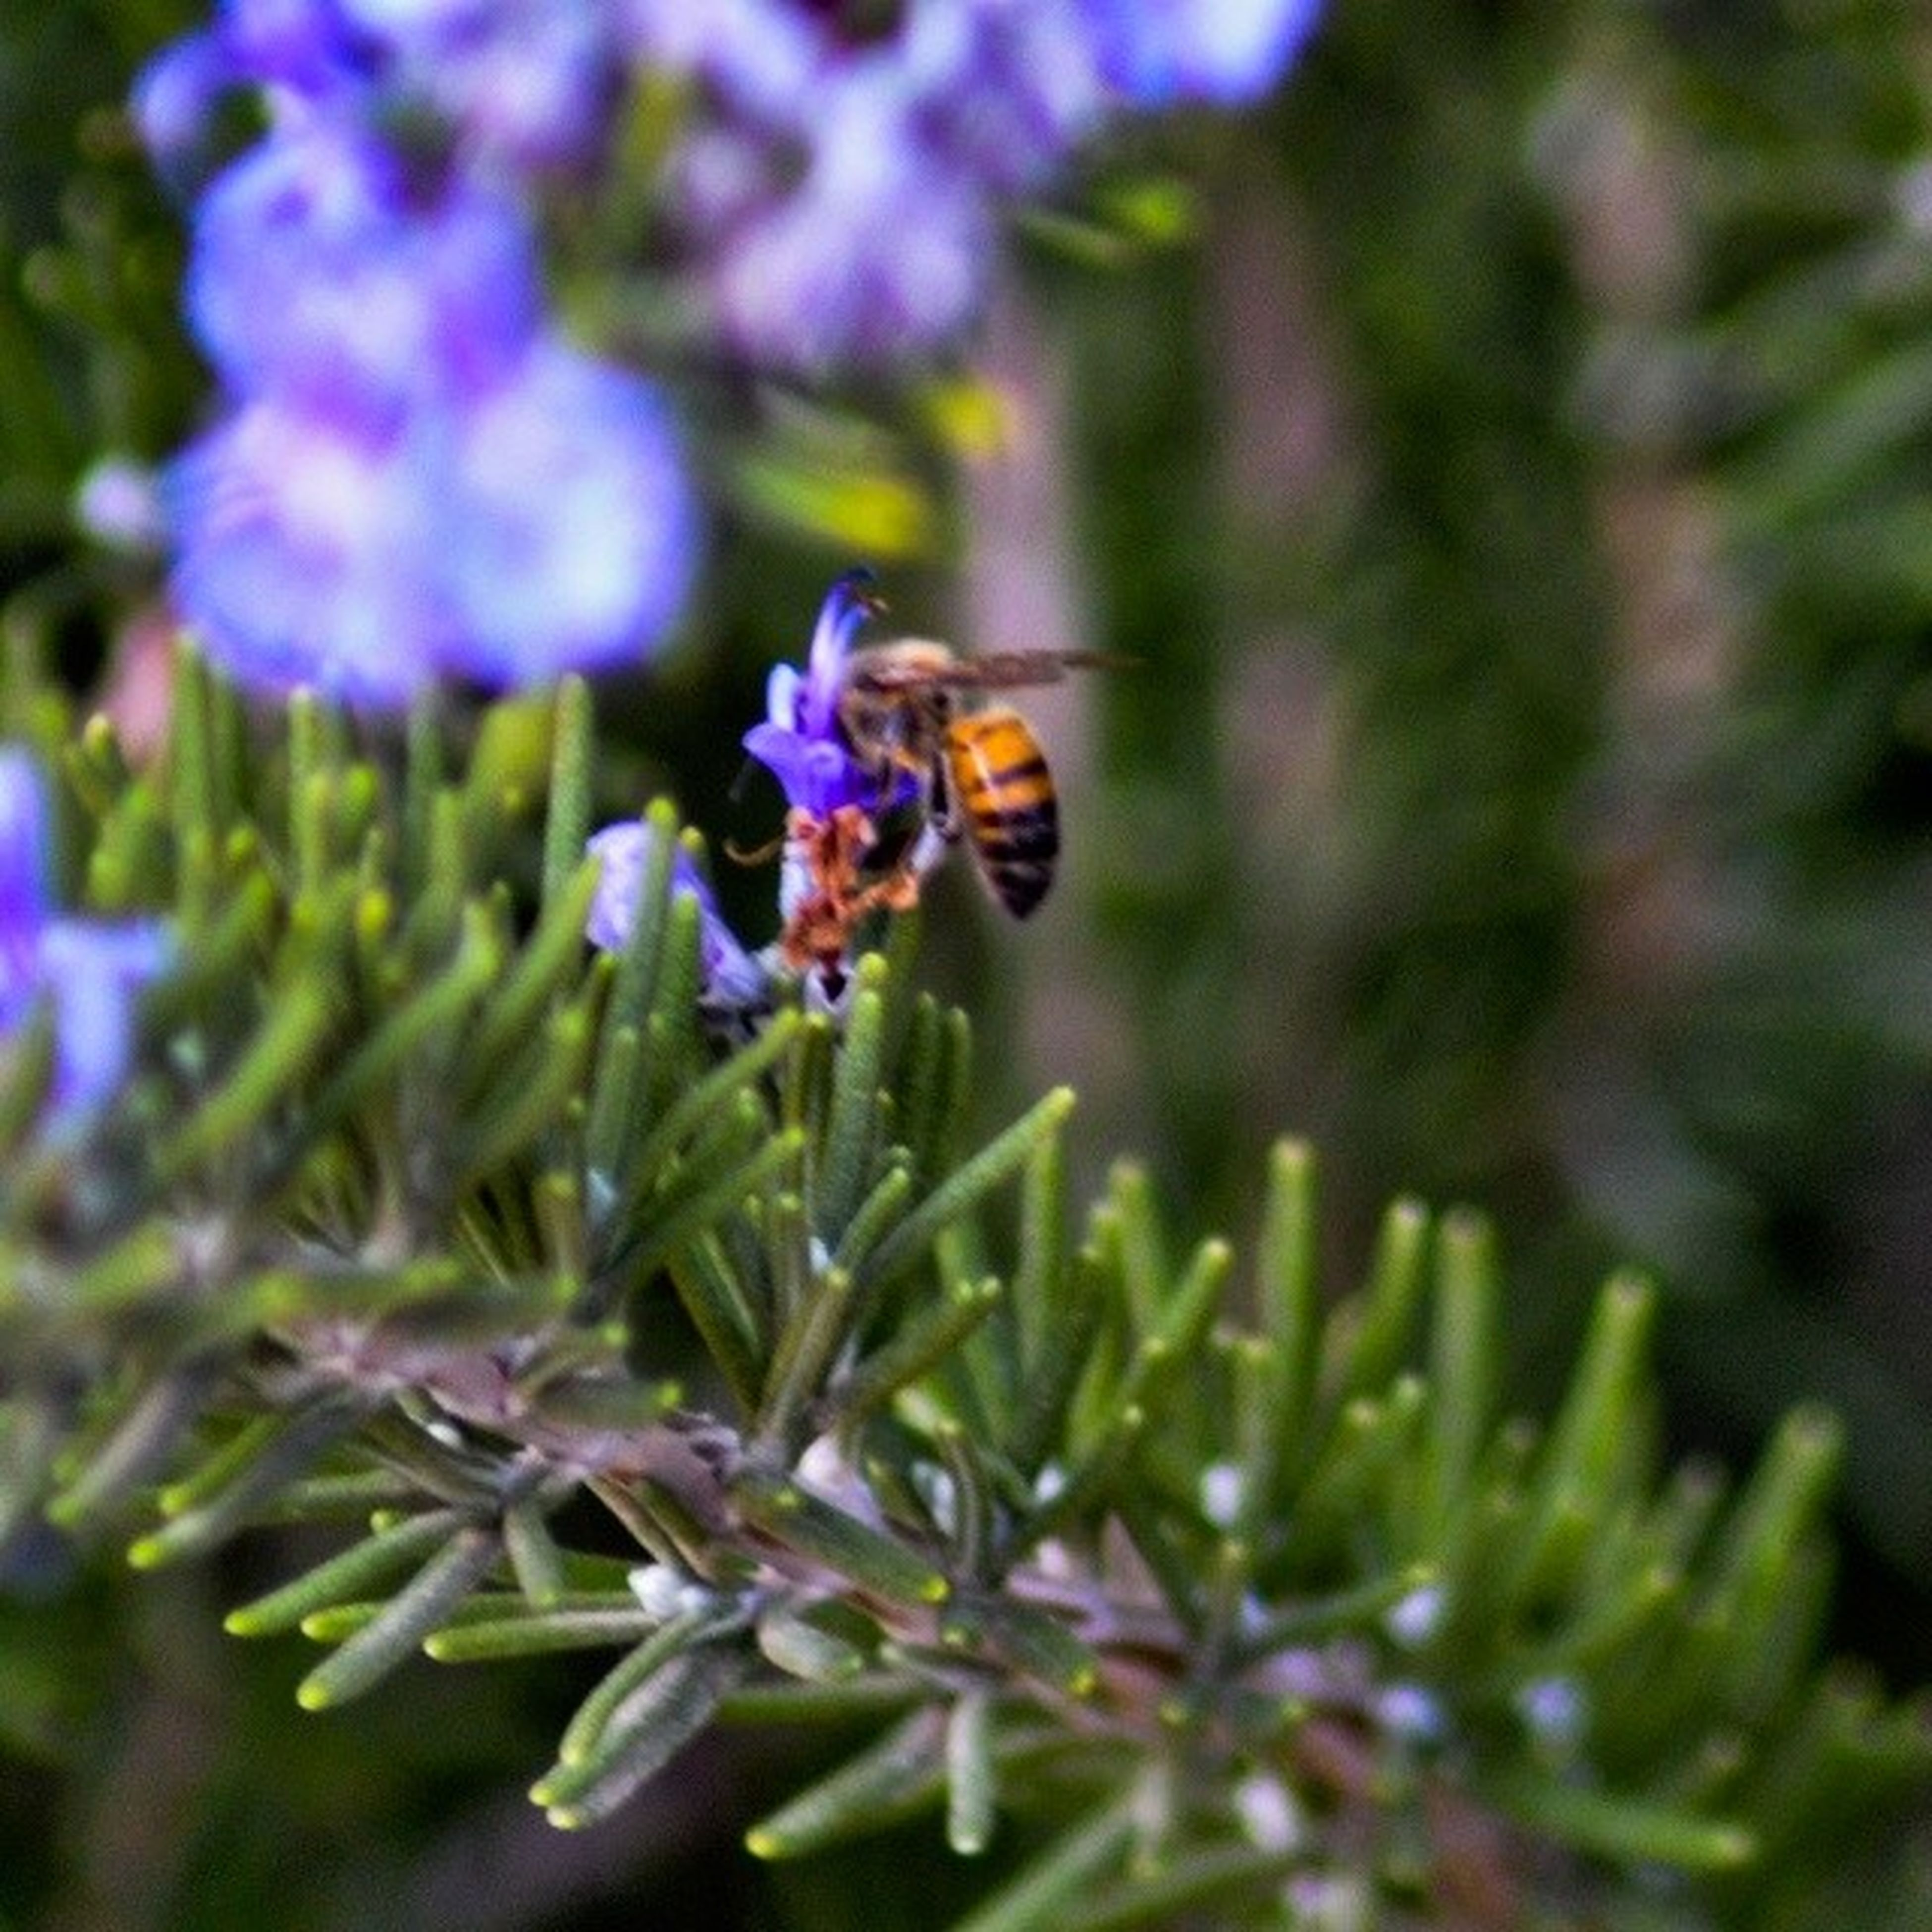 flower, insect, one animal, animal themes, animals in the wild, wildlife, purple, fragility, freshness, pollination, growth, bee, beauty in nature, close-up, plant, focus on foreground, selective focus, nature, petal, symbiotic relationship